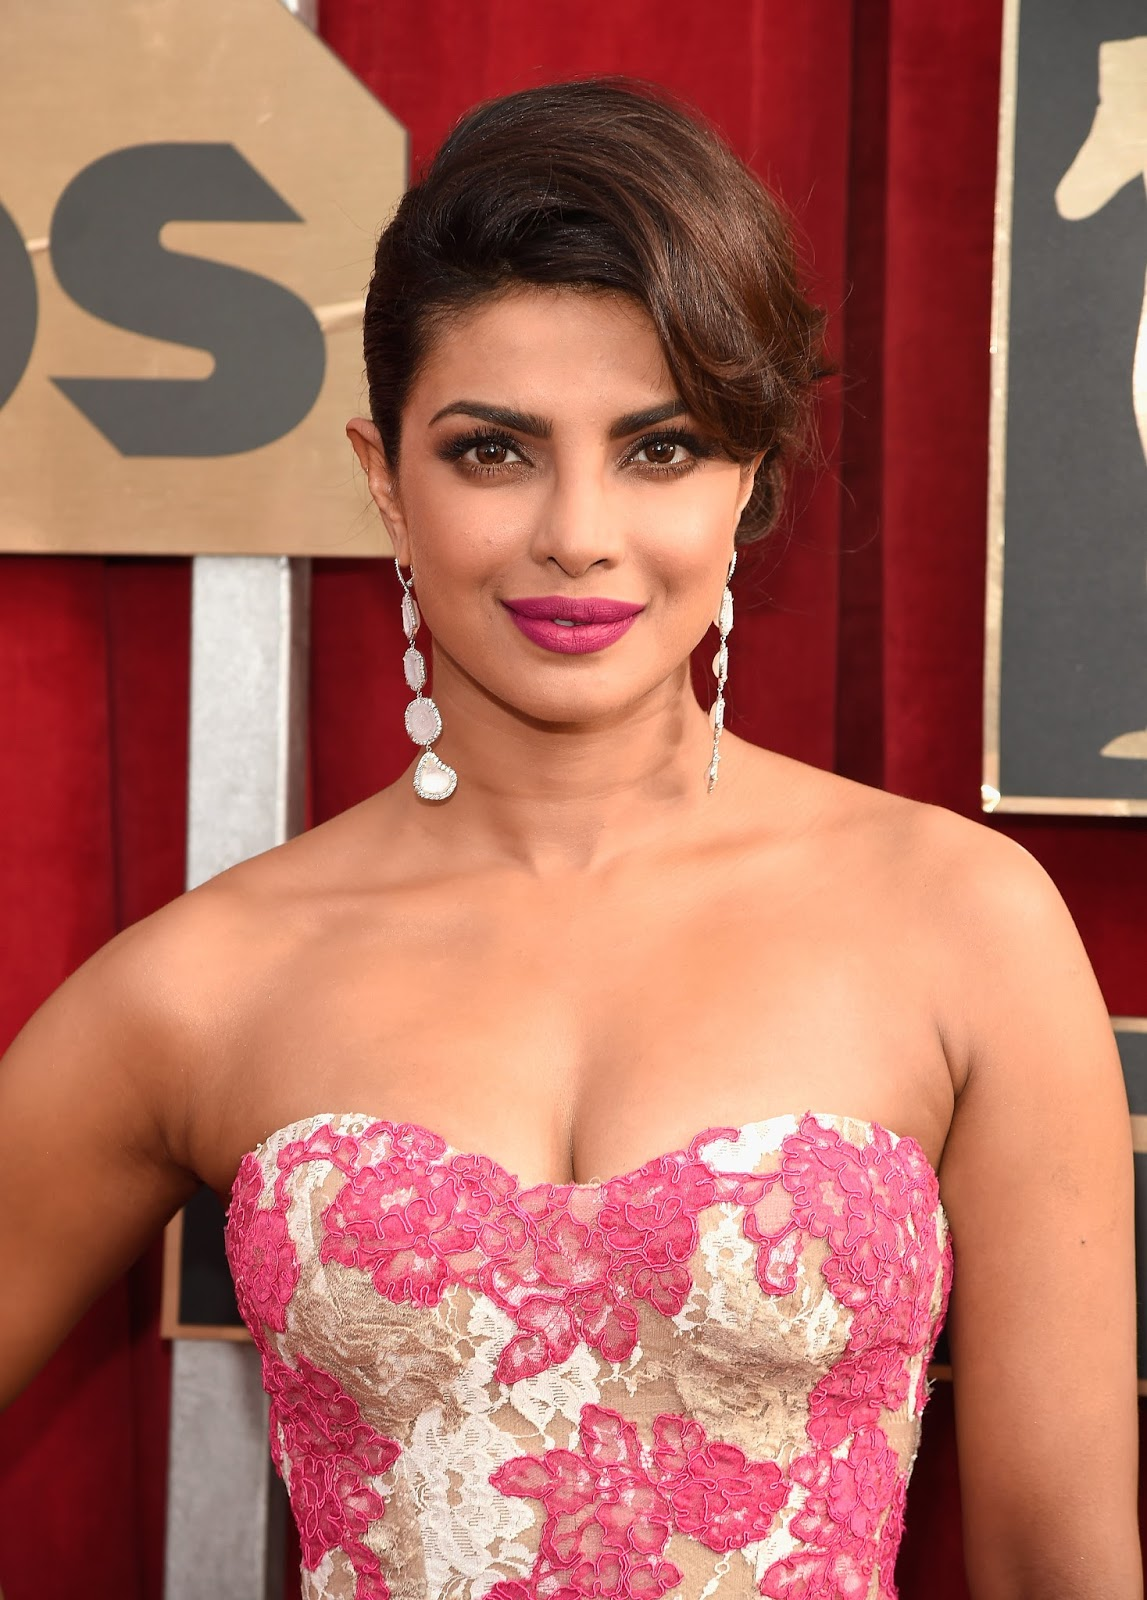 Actress Priyanka Chopra Hot And Spicy At Oscars 2016 -7896